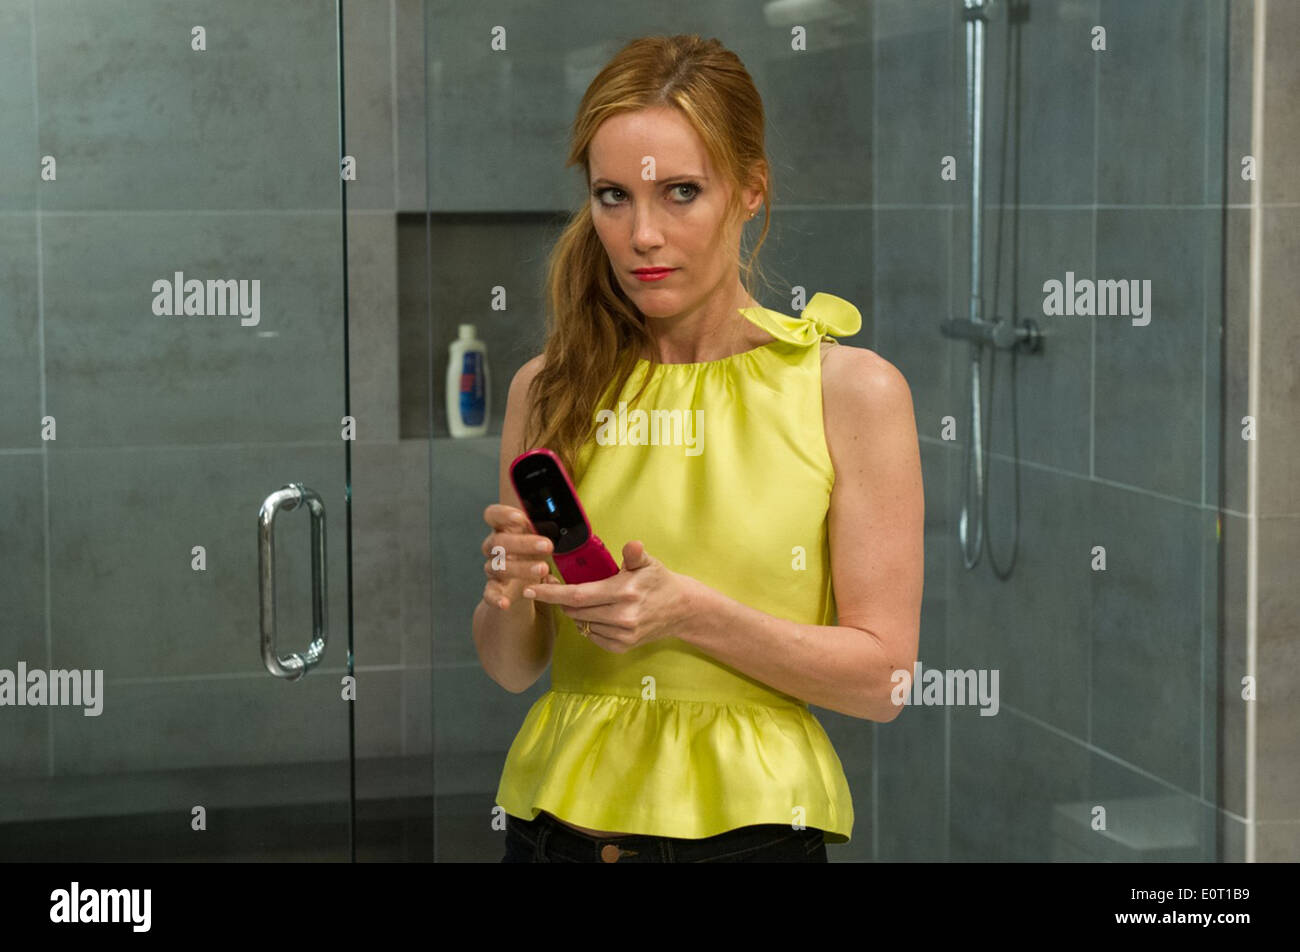 THE OTHER WOMAN (2014) LESLIE MANN NICK CASSAVETES (DIR) MOVIESTORE COLLECTION LTD - Stock Image